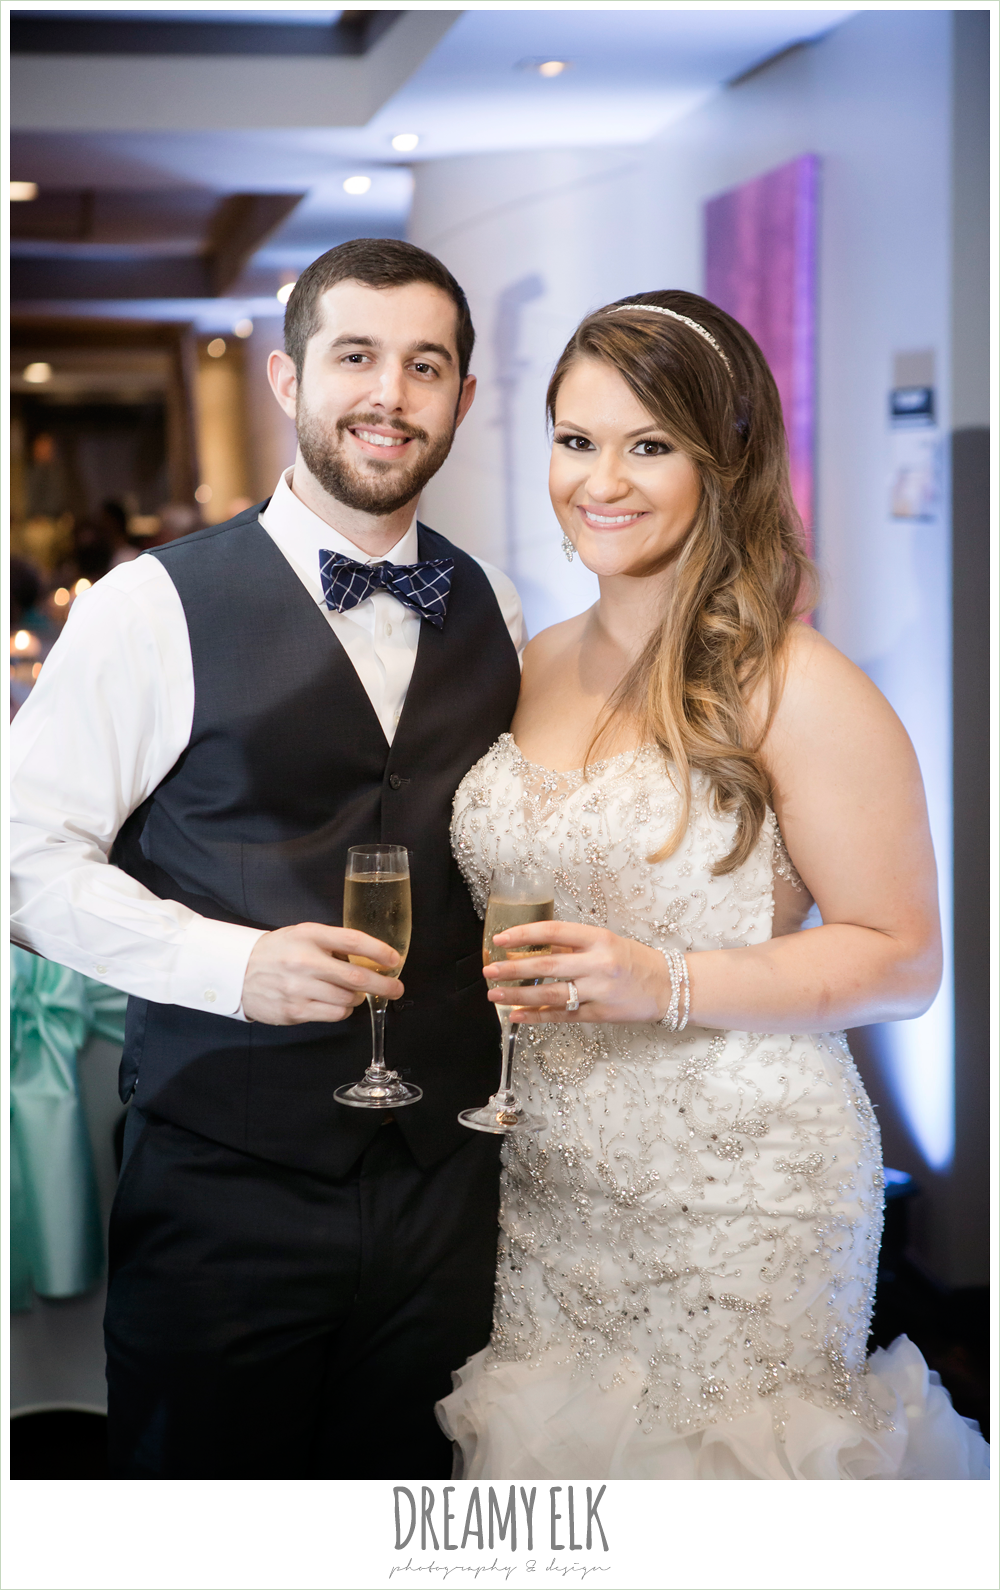 bride and groom at wedding reception, spring wedding, magnolia hotel, houston, texas {dreamy elk photography and design}